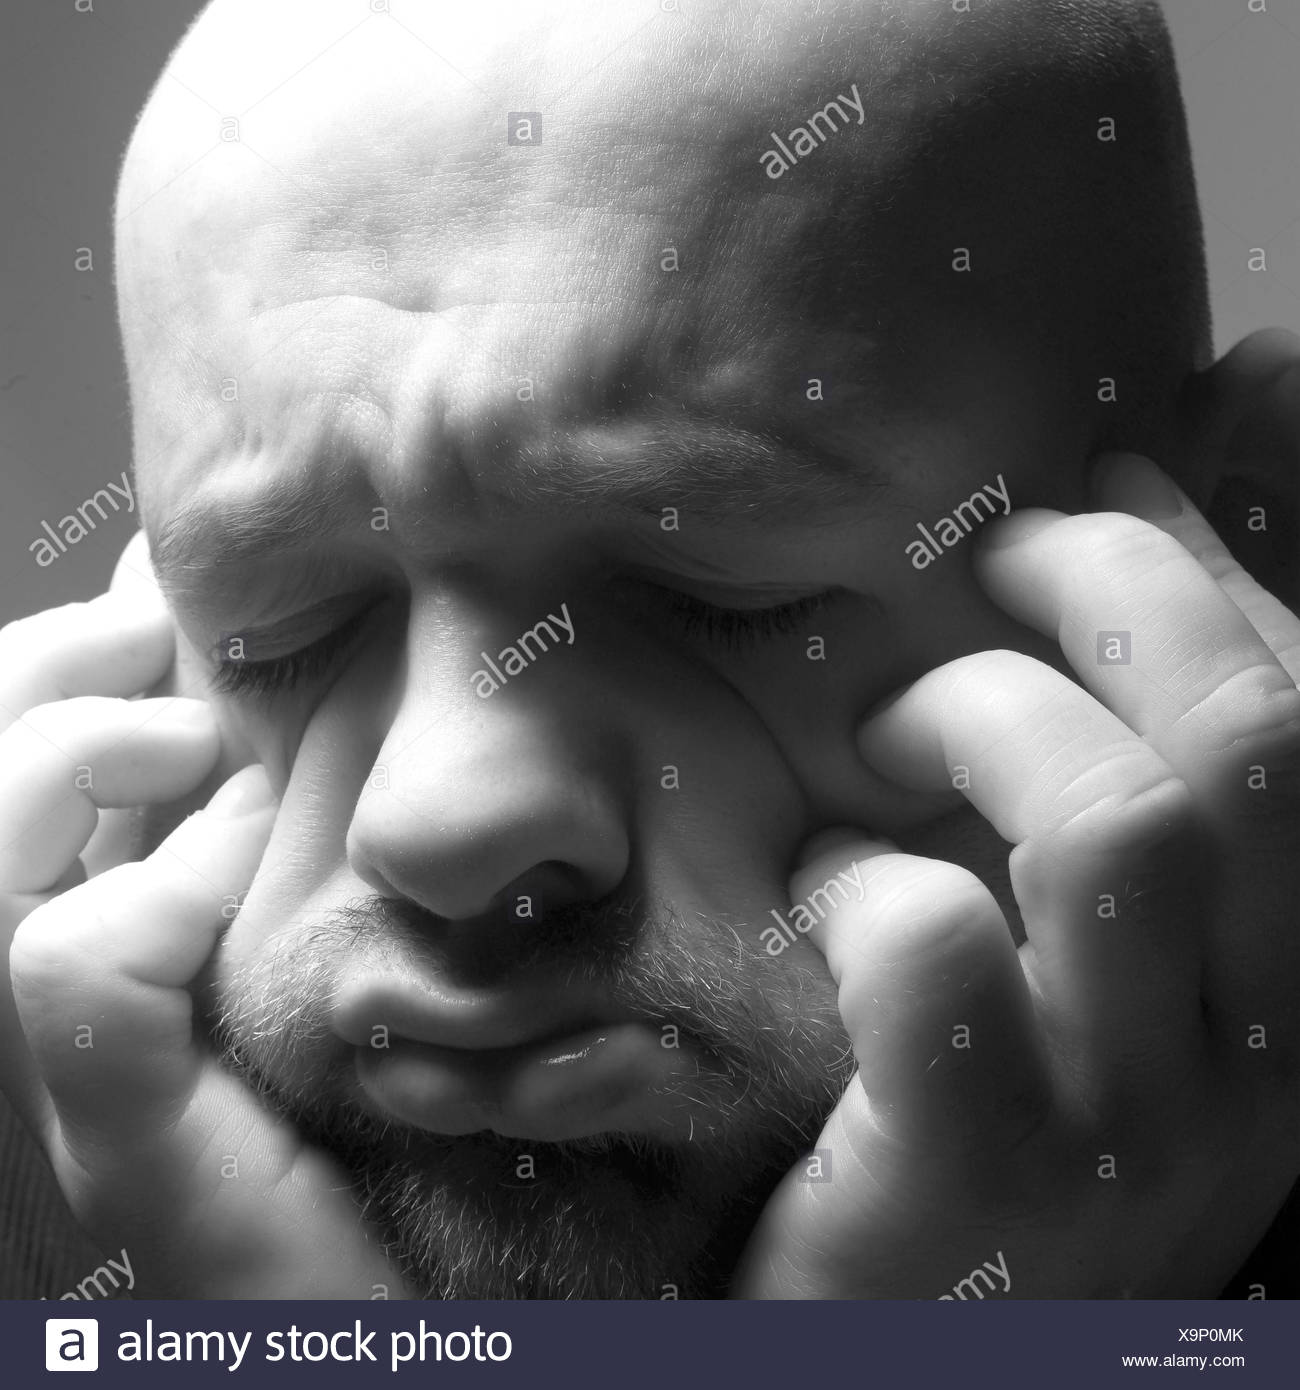 Man, head rest on, gesture, desperation, desperation, b/w, bald head, mood, thought, situation, negatively, hopelessness, grief, worries, depression, helplessly, depresses, think despondently, unhappily, suppressed, helplessness, misfortune, disappointmen - Stock Image